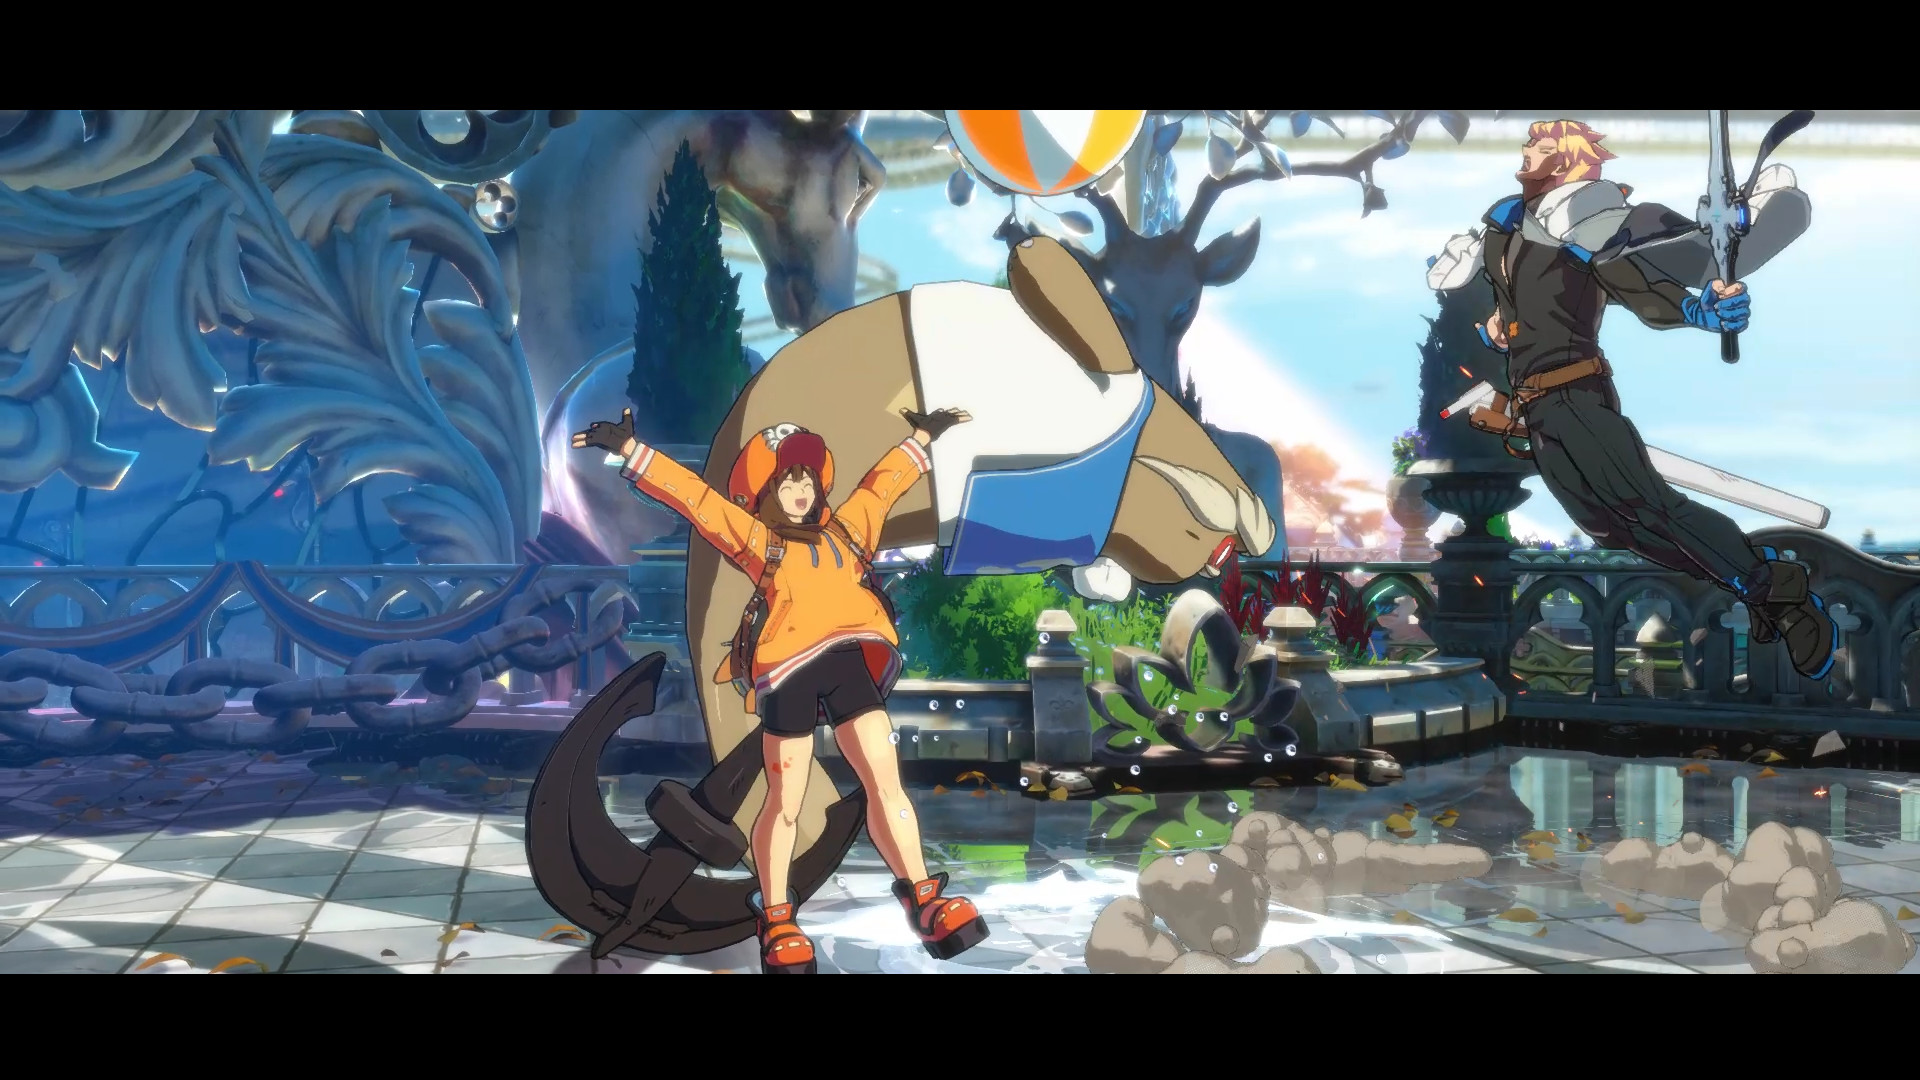 An Image from Guilty Gear: Strive